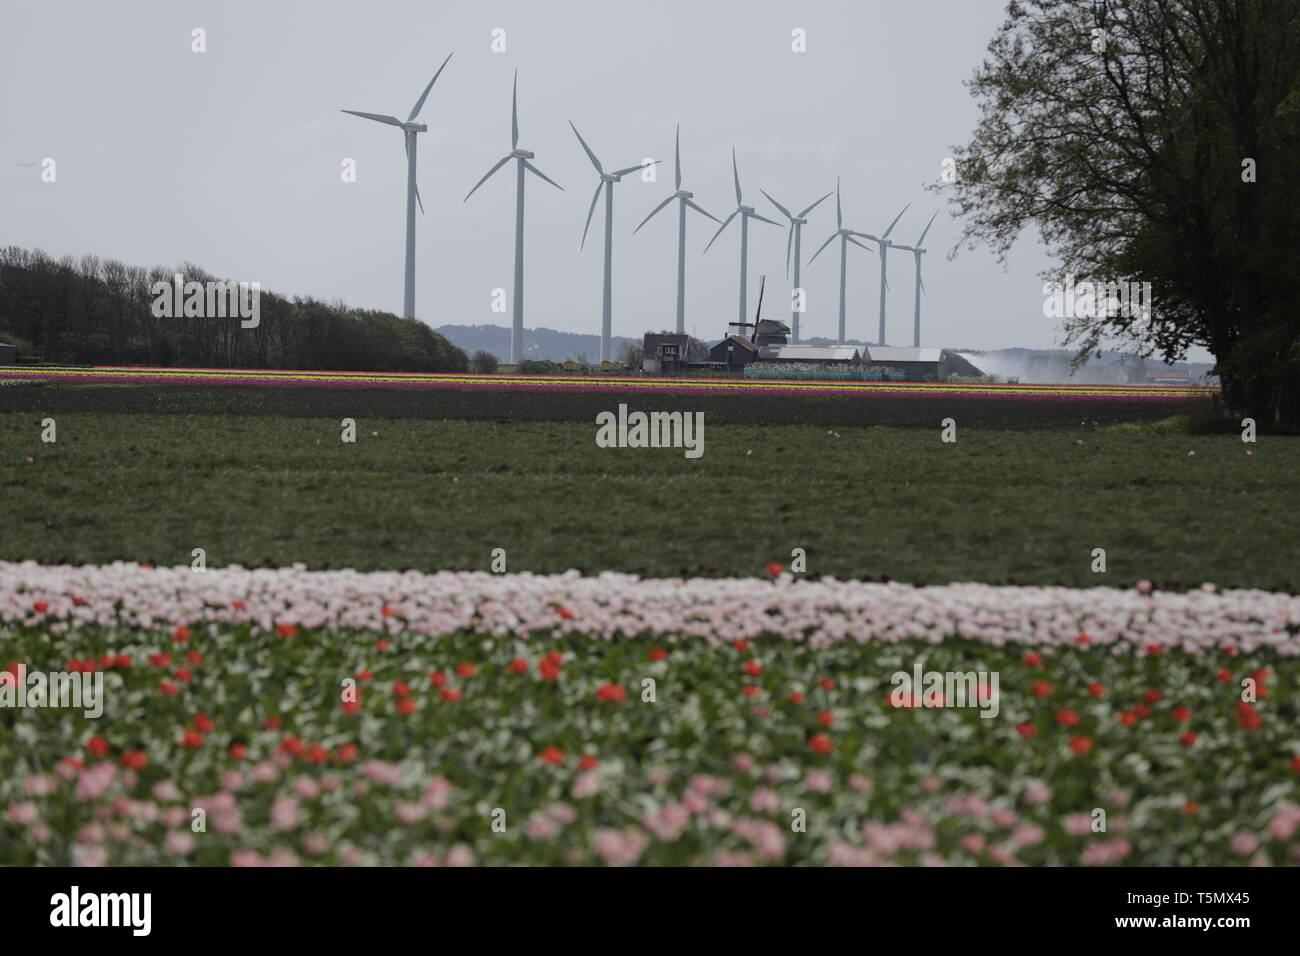 Dutch landscape, a tulipfield with modern windmills at the background Stock Photo